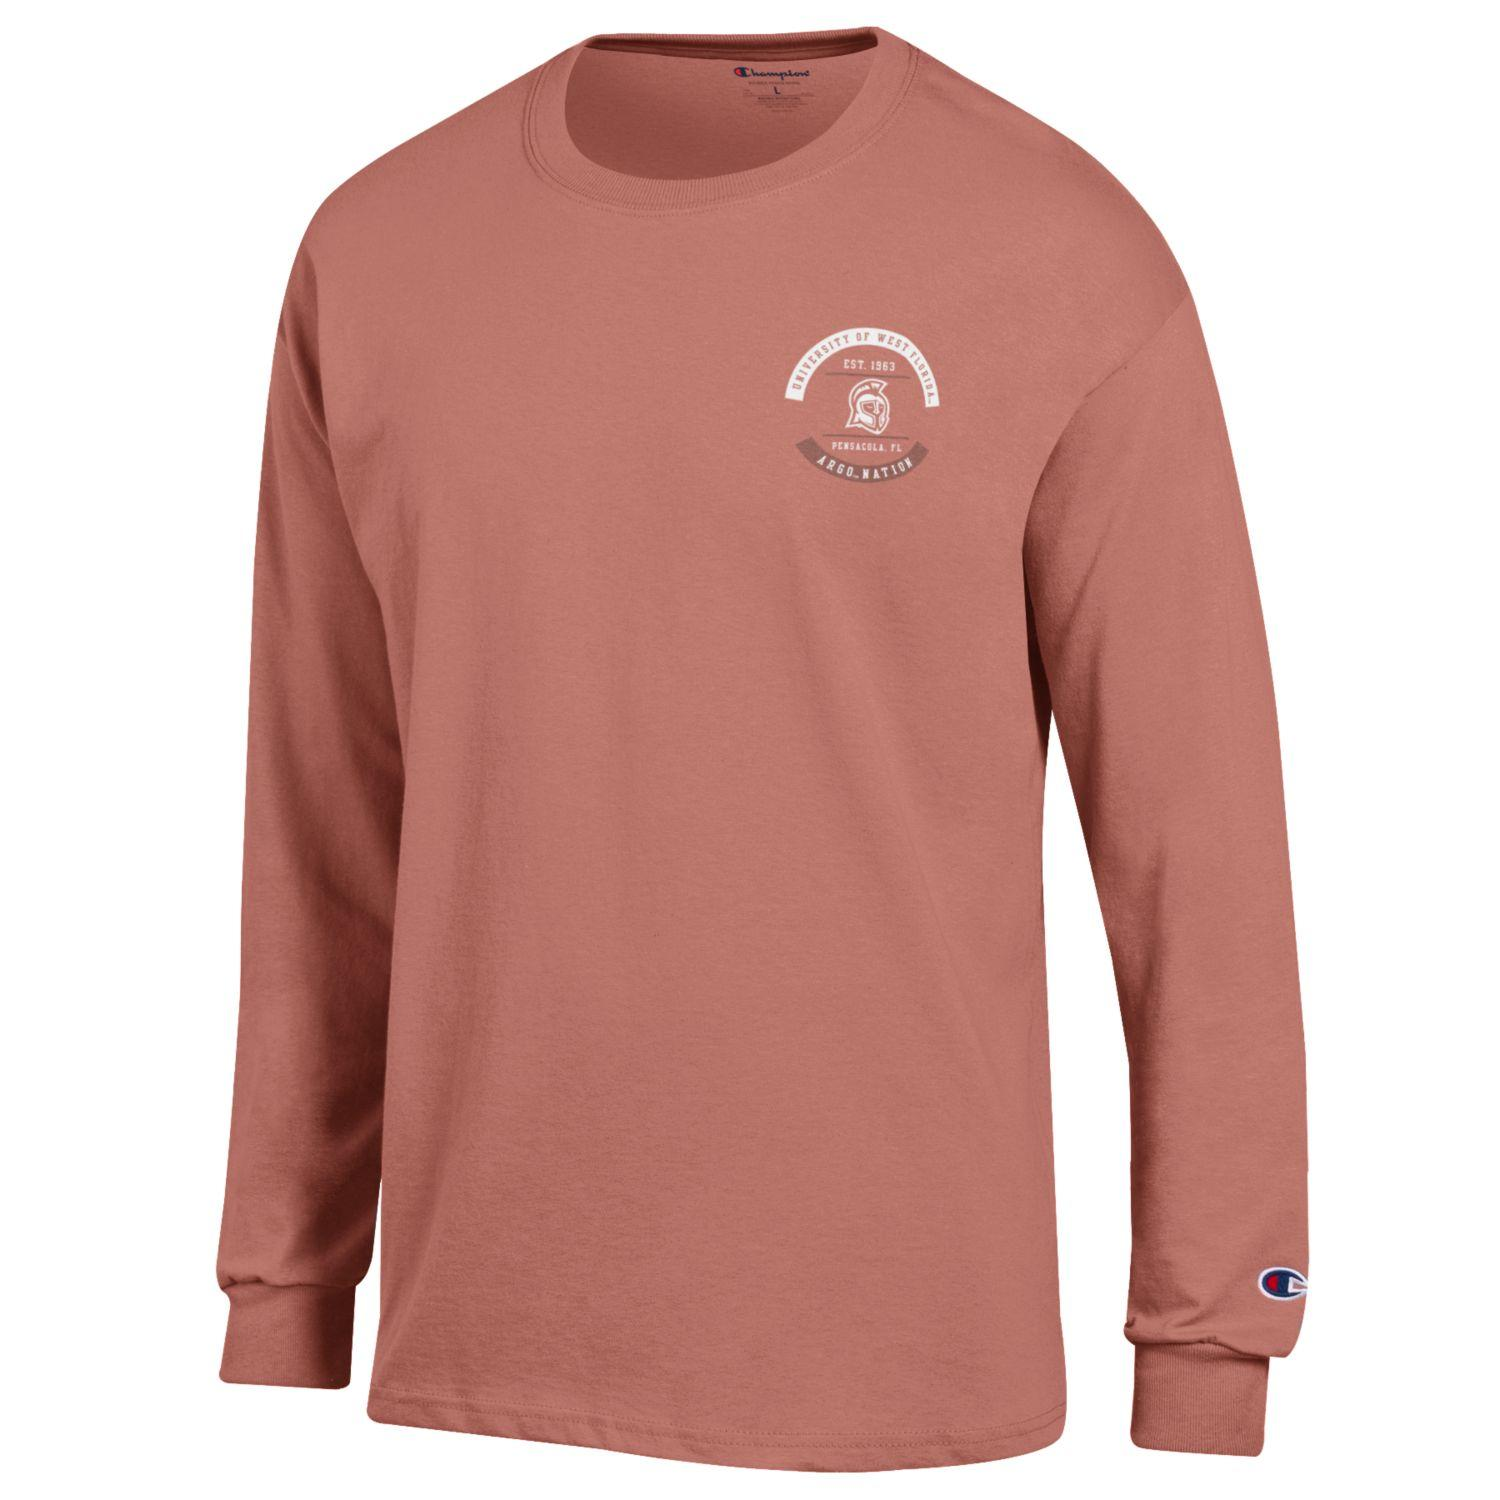 UWF coral long sleeve